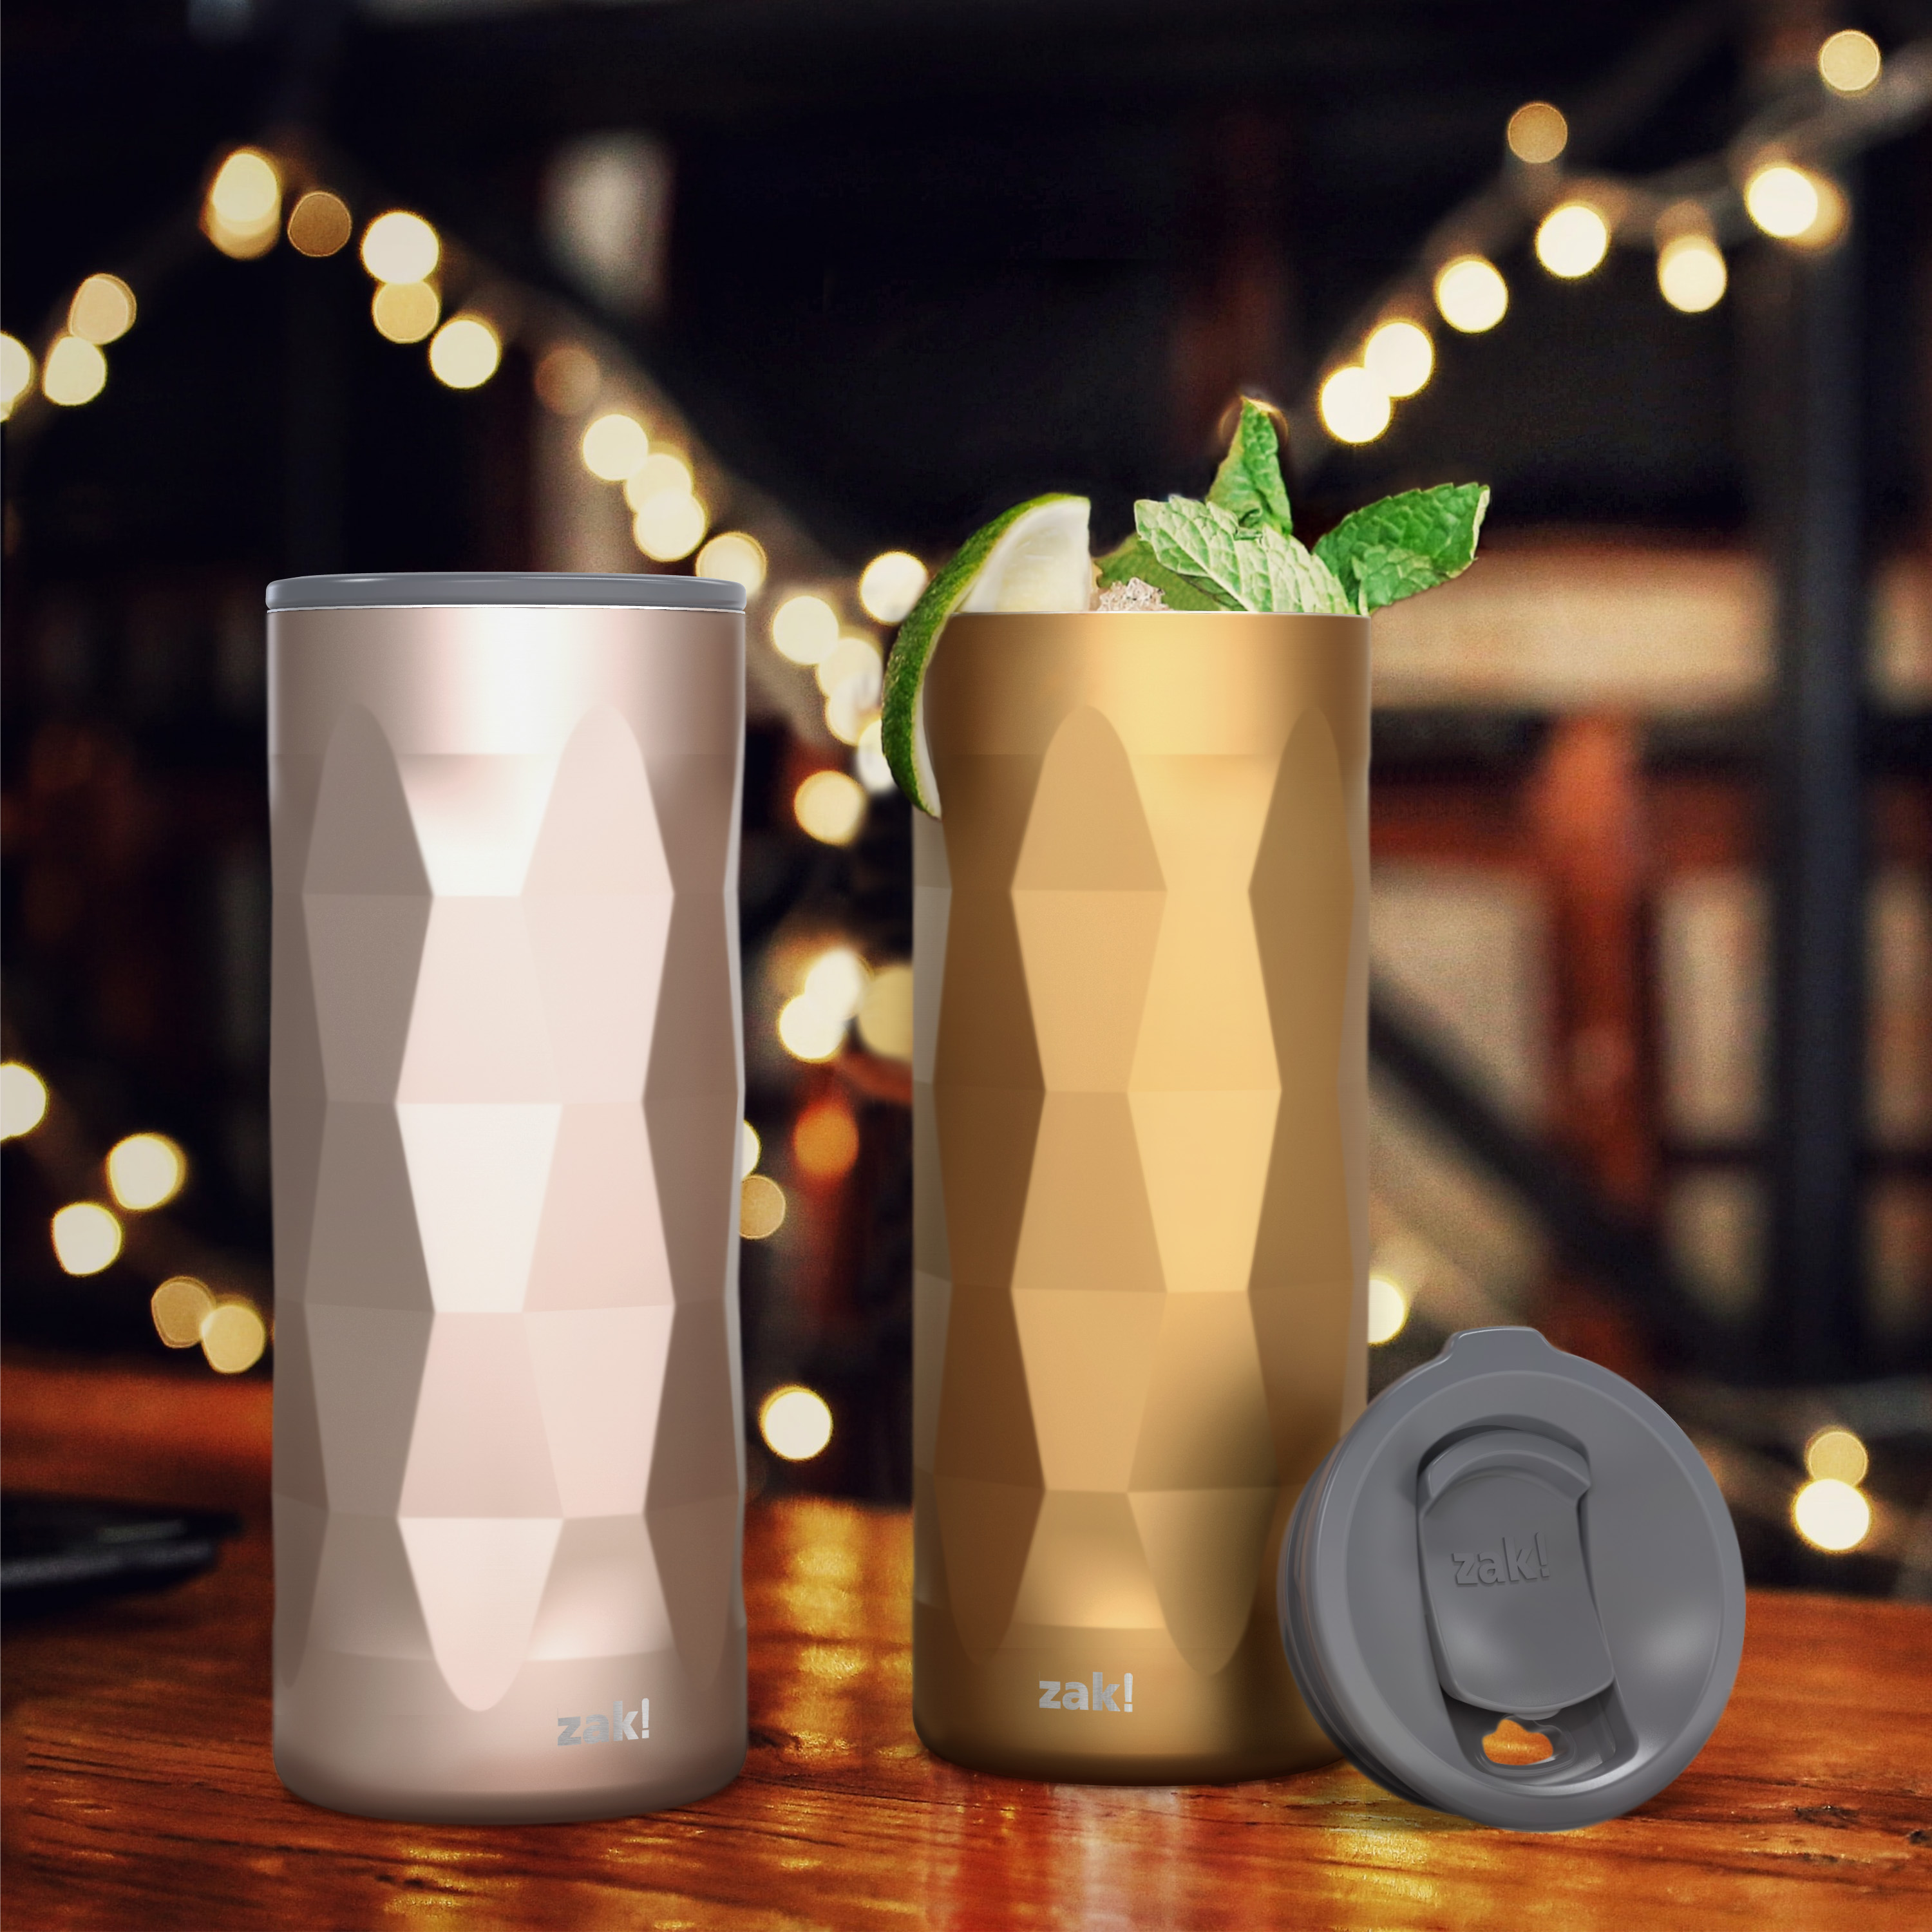 Fractal 16 ounce Vacuum Insulated Stainless Steel Tumbler, Copper slideshow image 3